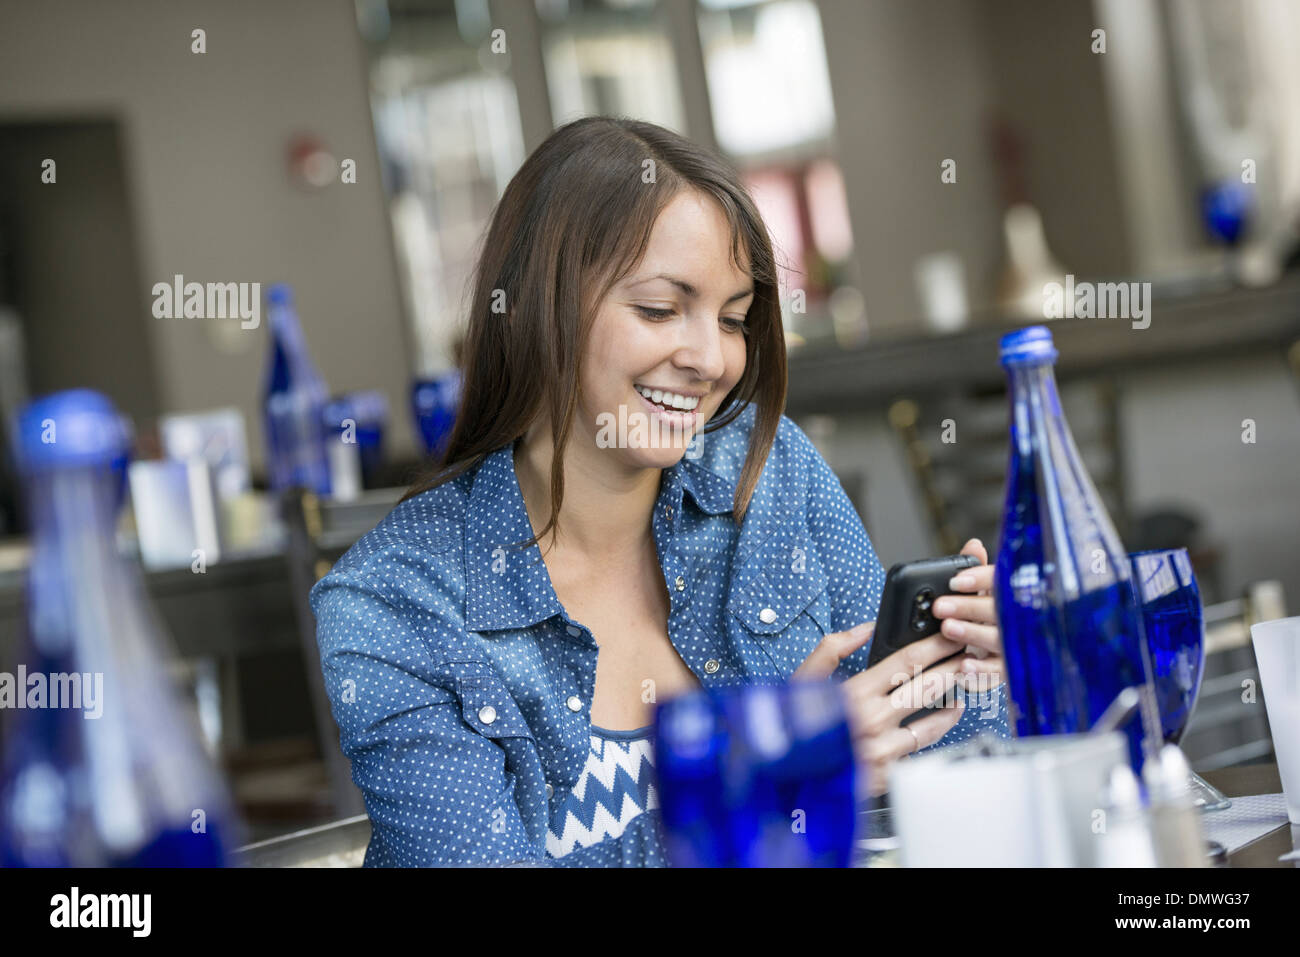 A woman seated in a cafe using a smart phone. - Stock Image